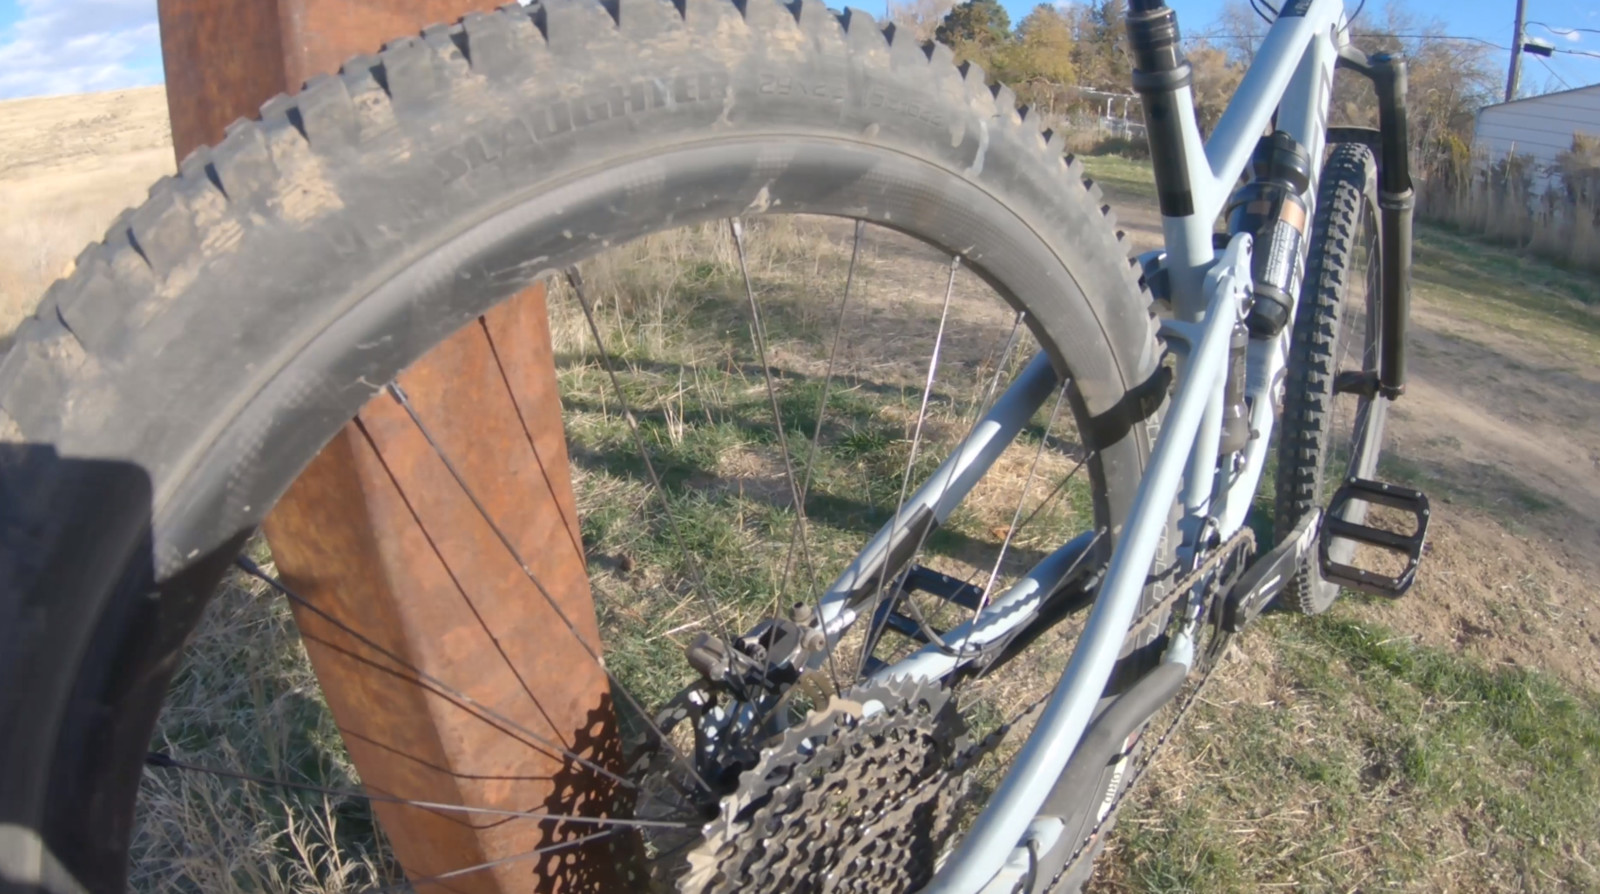 For fun, we swapped out the stock wheels and tires with a Roval Traverse SL carbon wheelset and 2.3 Specialized Butcher/Slaughter tire combo. Between these parts and the GX Eagle cassette, the bike lost almost four pounds and turned into a rocket ship.